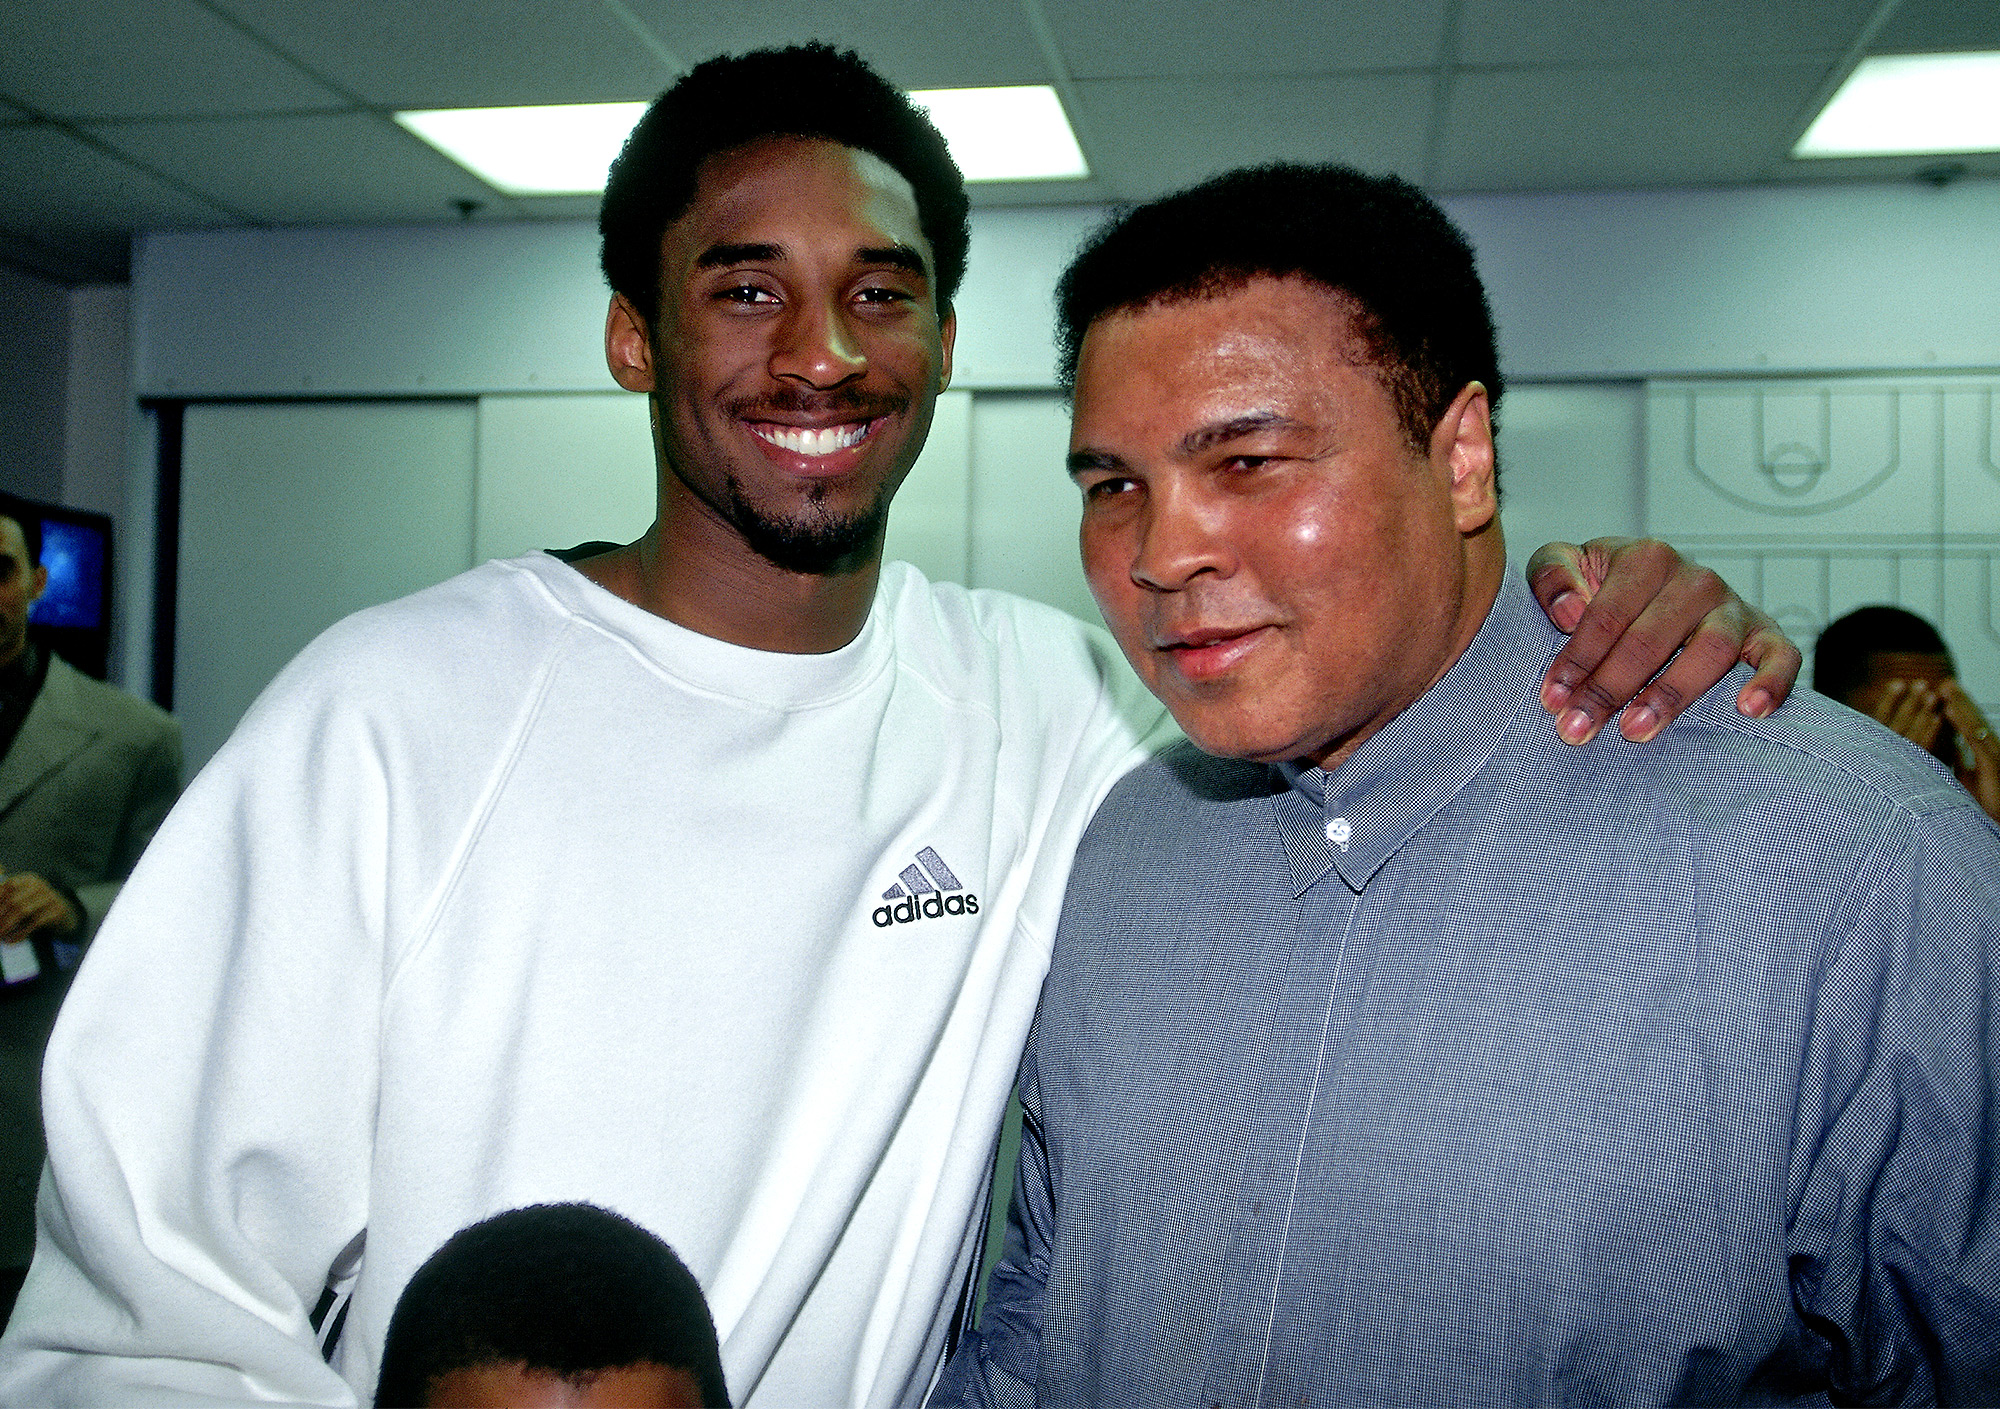 Kobe Bryant #8 of the Los Angeles Lakers poses with Mohammad Ali